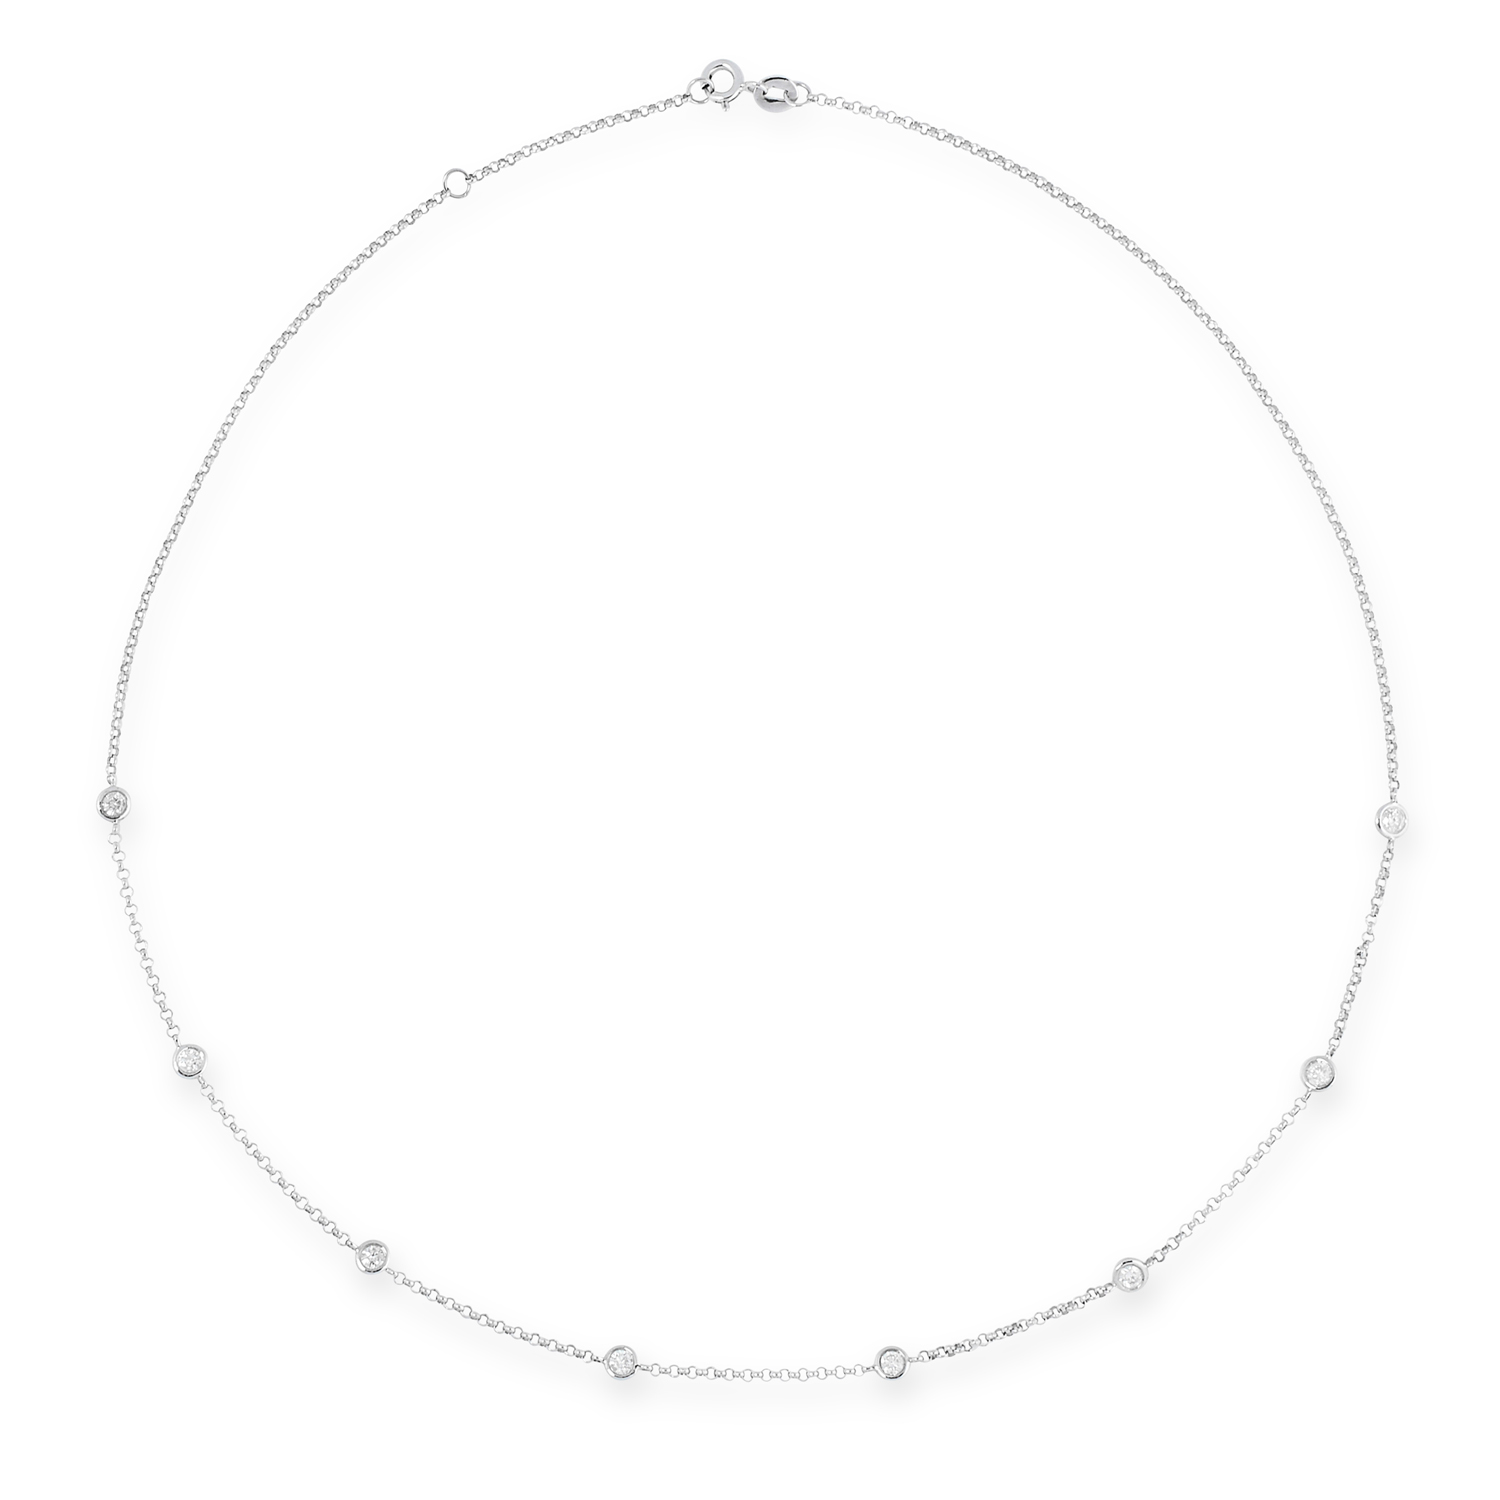 A DIAMOND CHAIN NECKLACE in 18ct white gold, set with eight round brilliant cut diamonds totalling